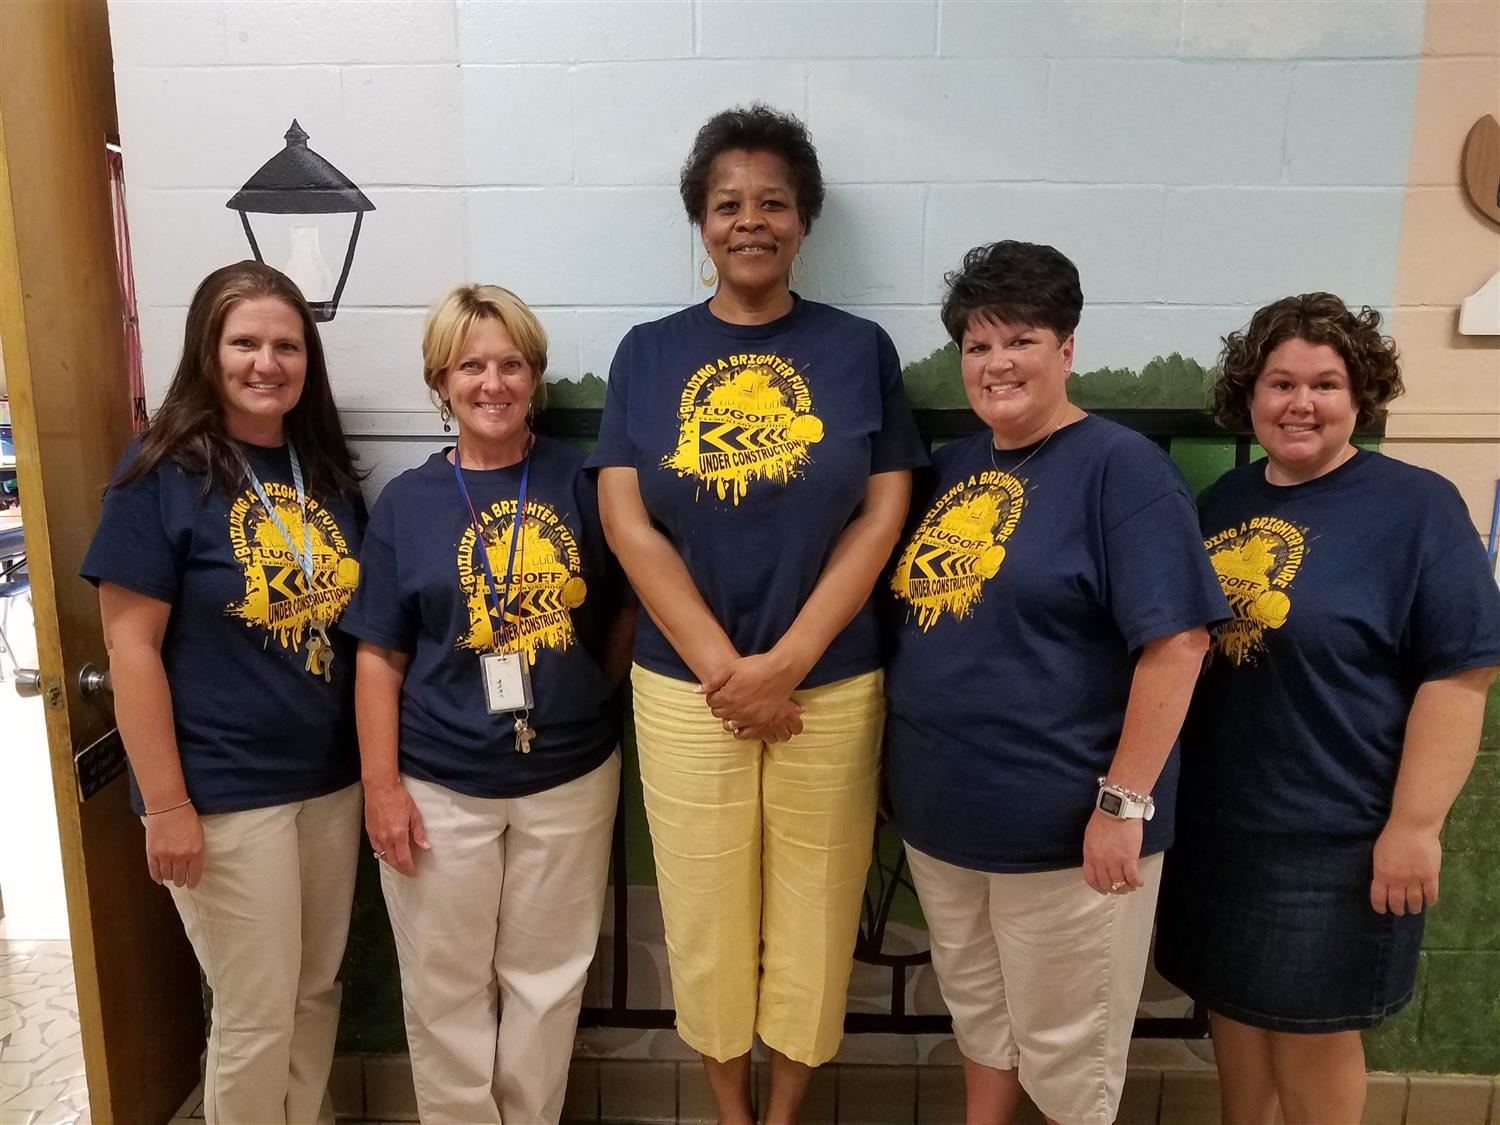 Meet the 2nd Grade Team